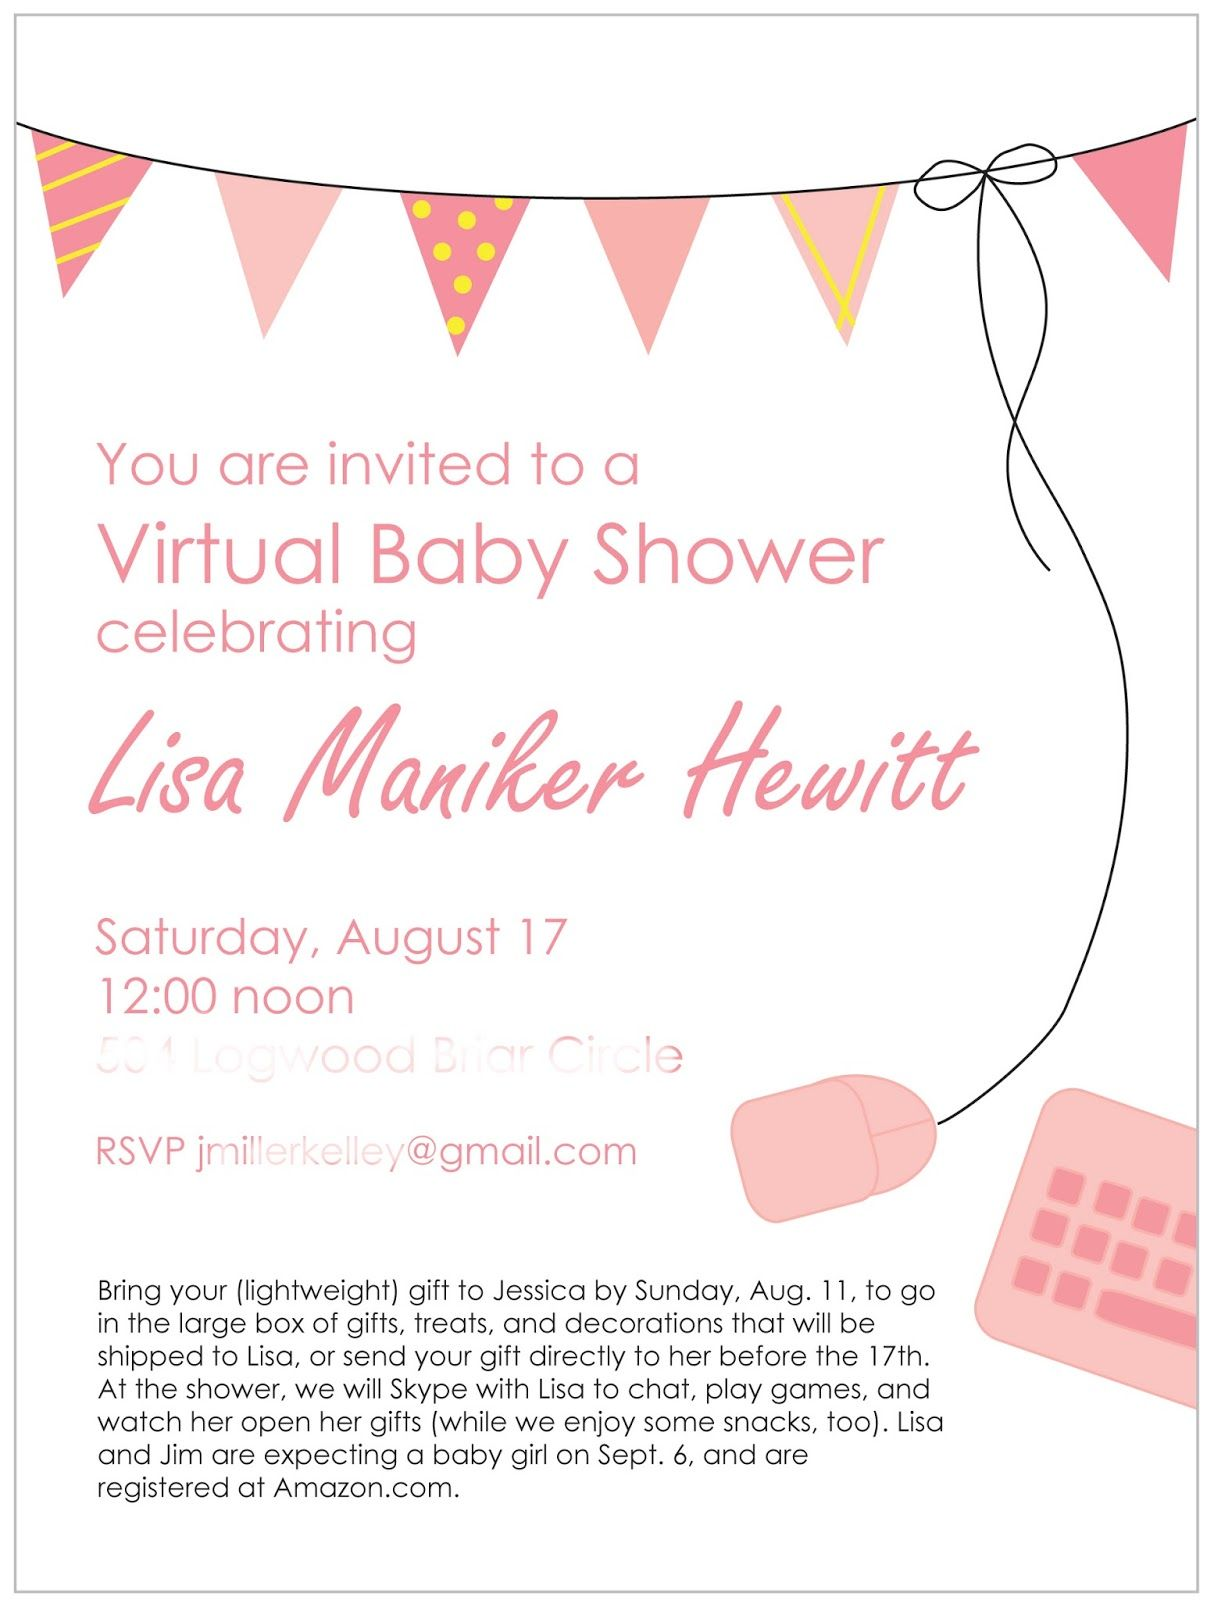 The Parsonage Family: How to Throw a Virtual Baby Shower